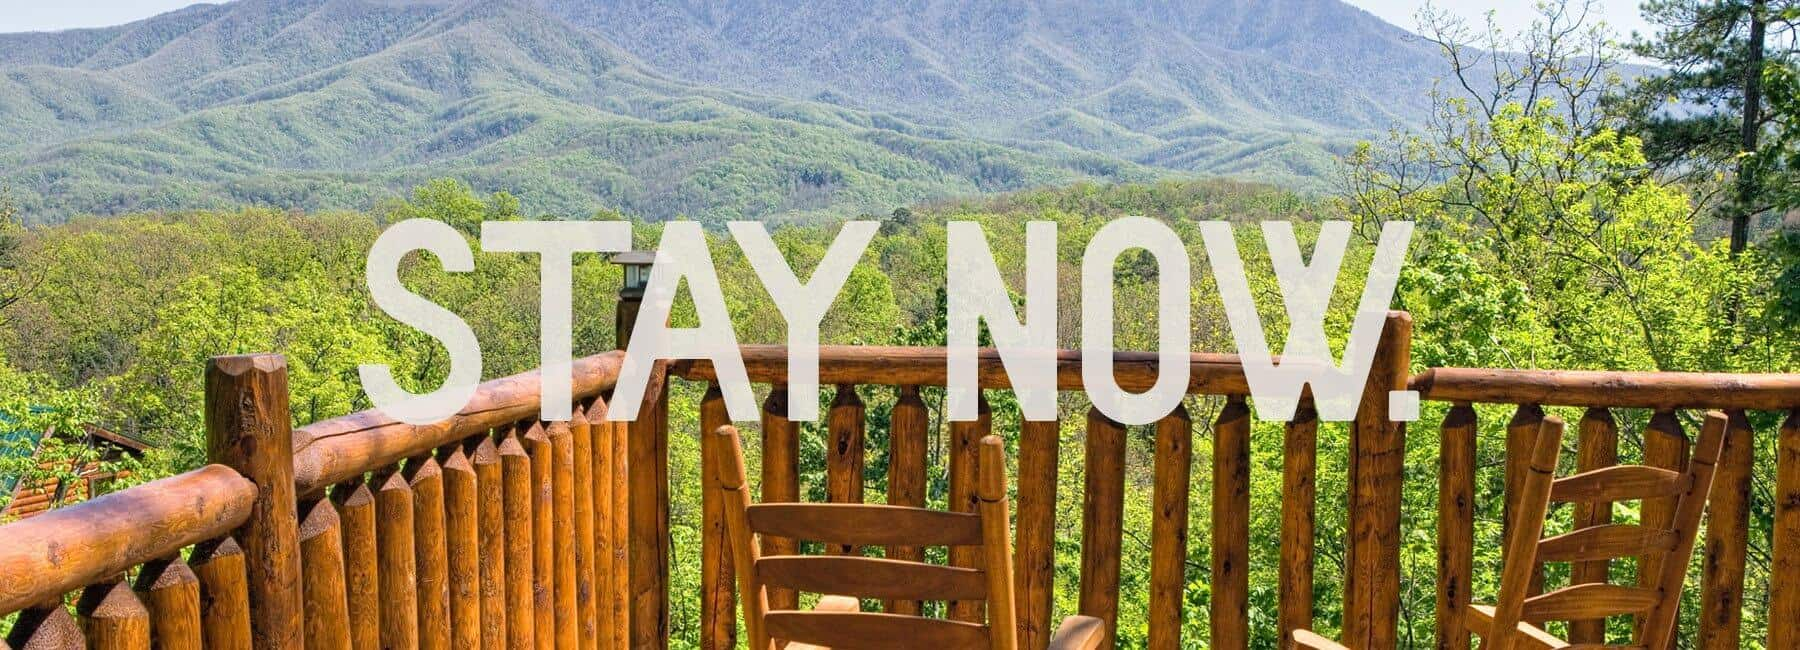 Places to Stay in the Great Smoky Mountains